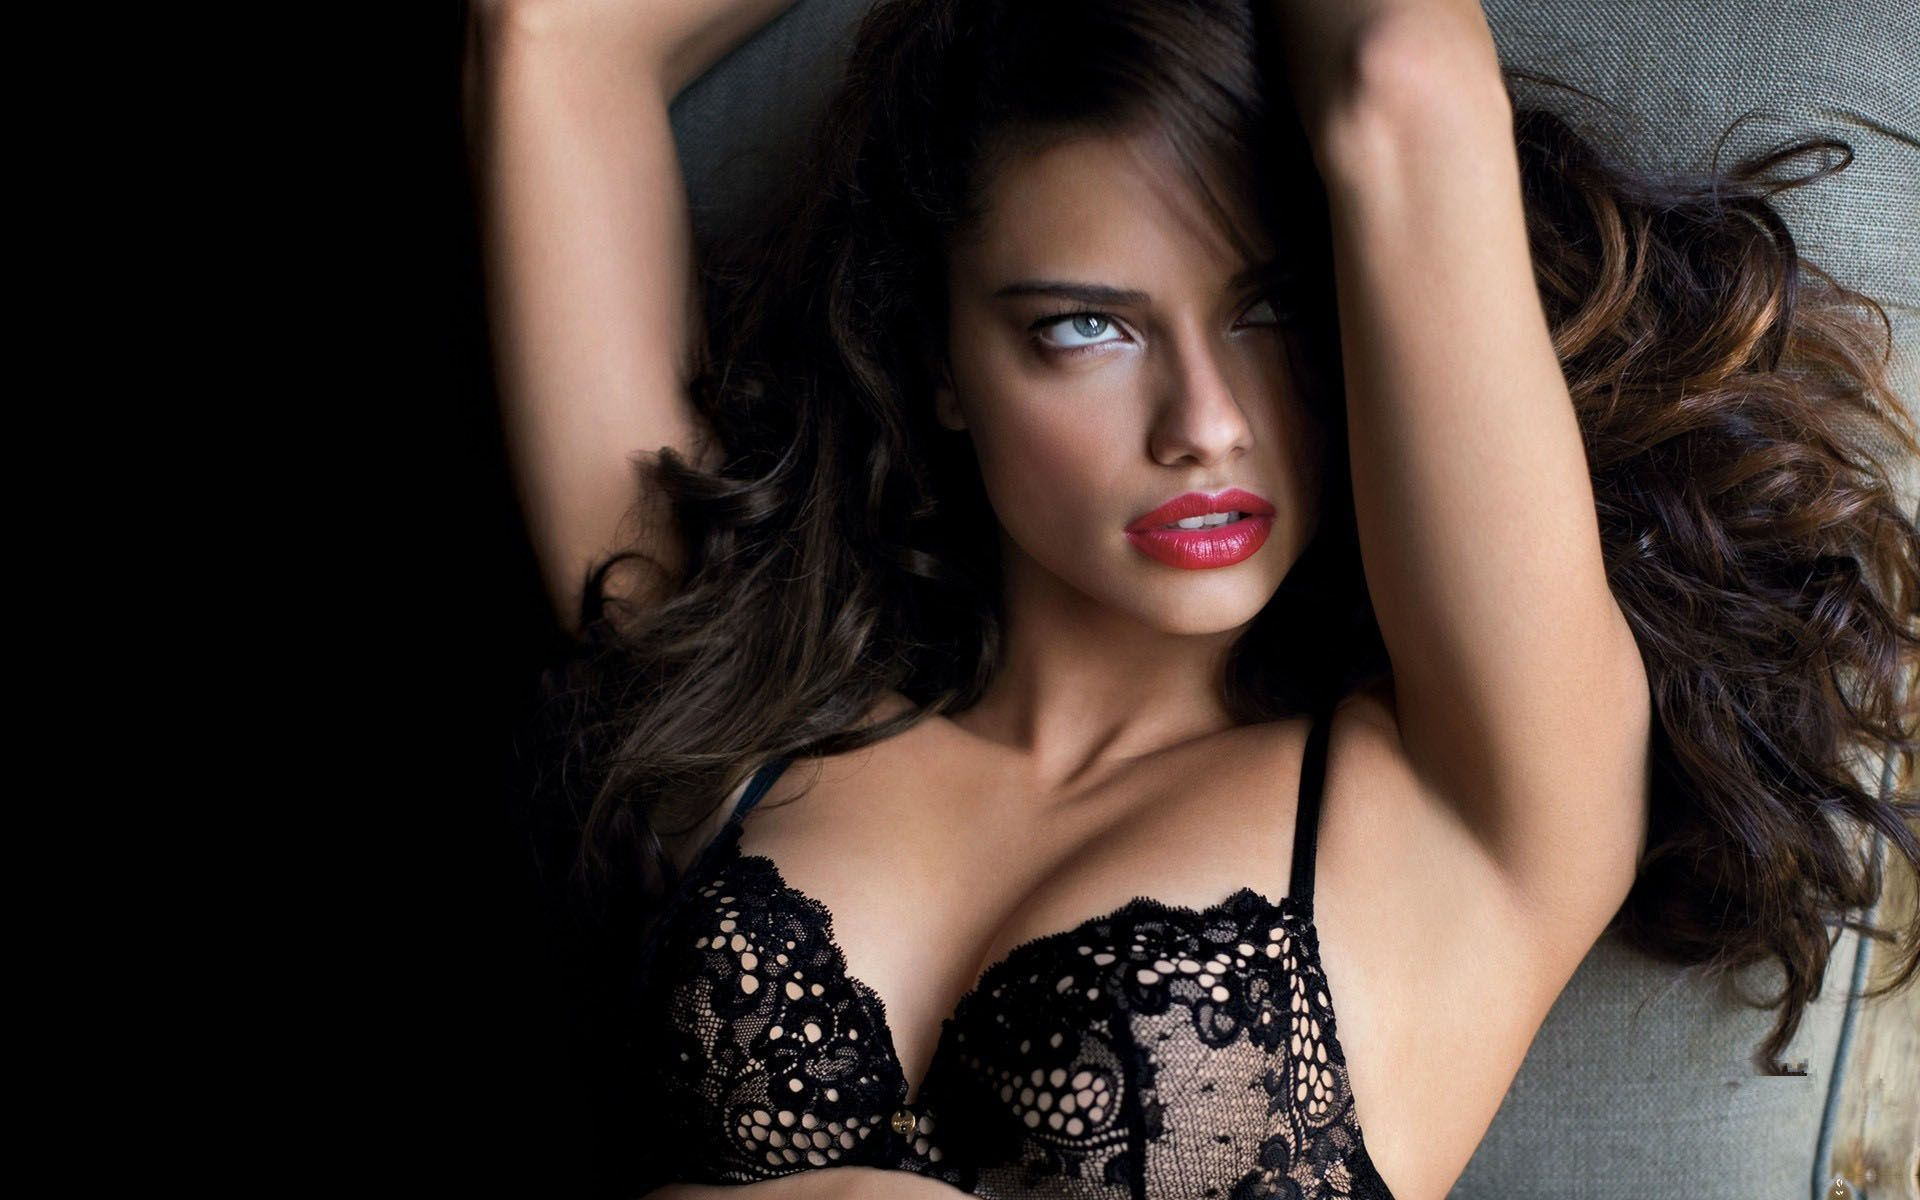 Adriana lima hairstyles 2014 - Adriana Lima 2014 Hd Wallpapers In Wallpaper Collections